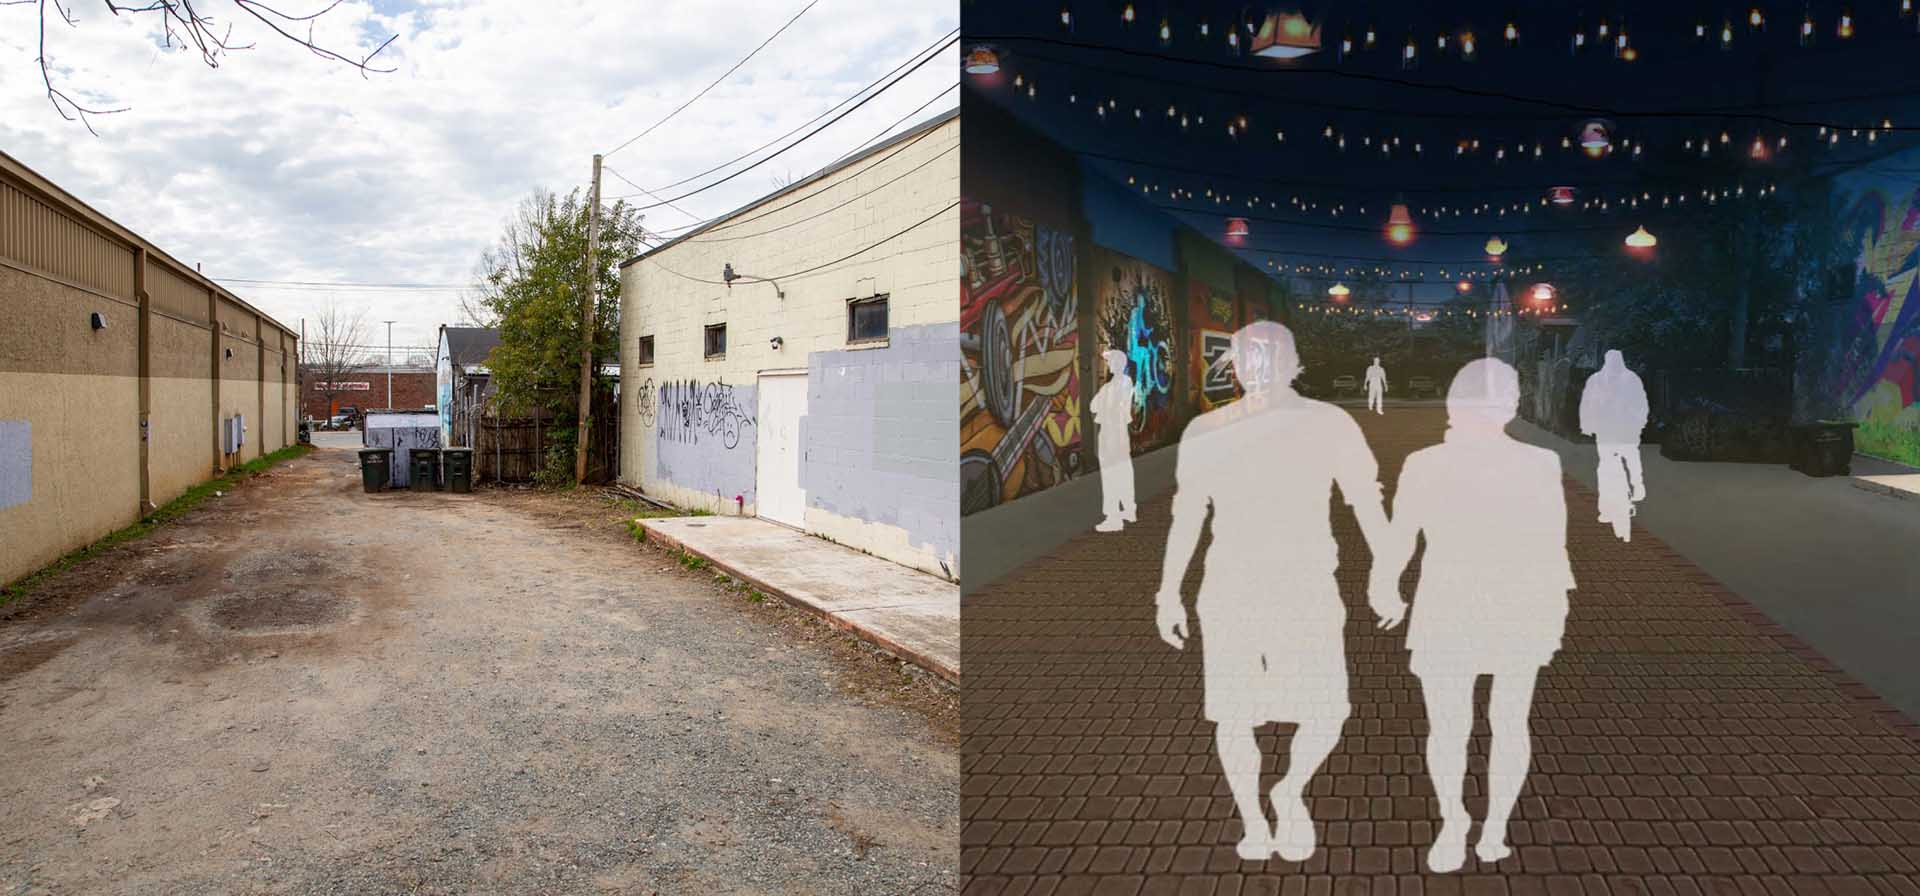 A side-by-side image of the Gordon Street Alley as it is now, with a model of how it could look after being remodeled.